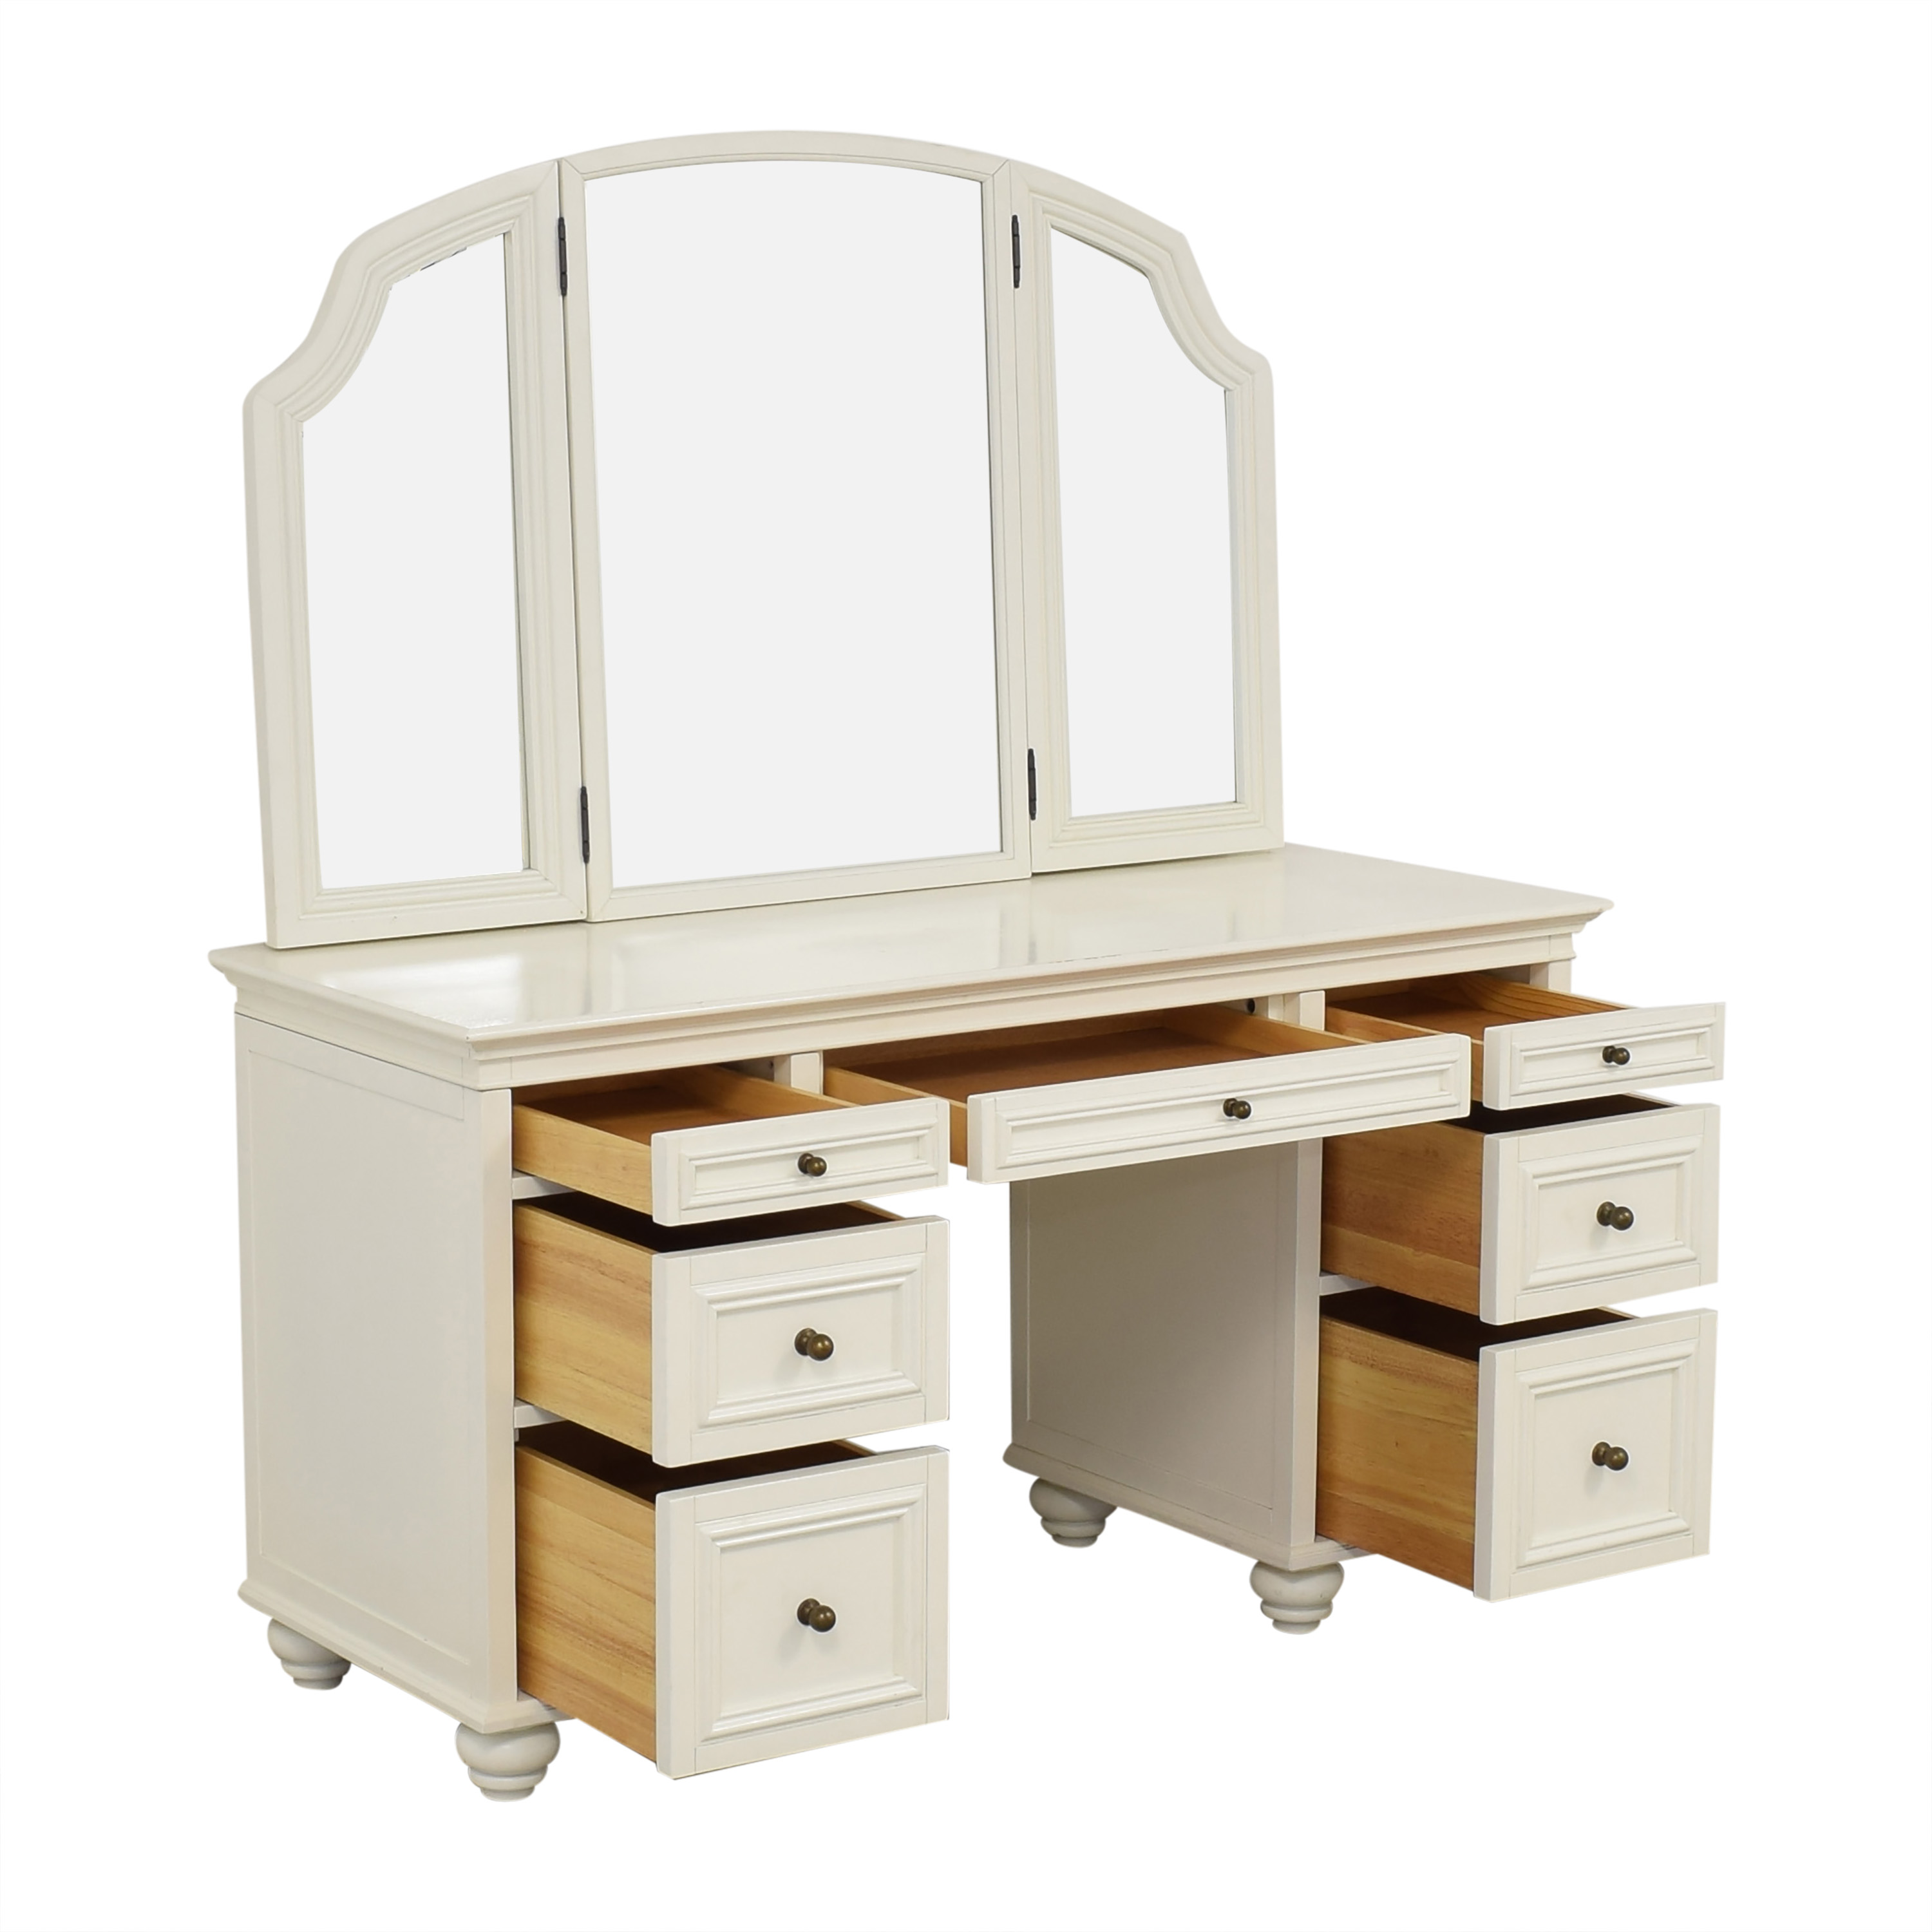 buy Pottery Barn Pottery Barn Chelsea Vanity Desk with Chair online